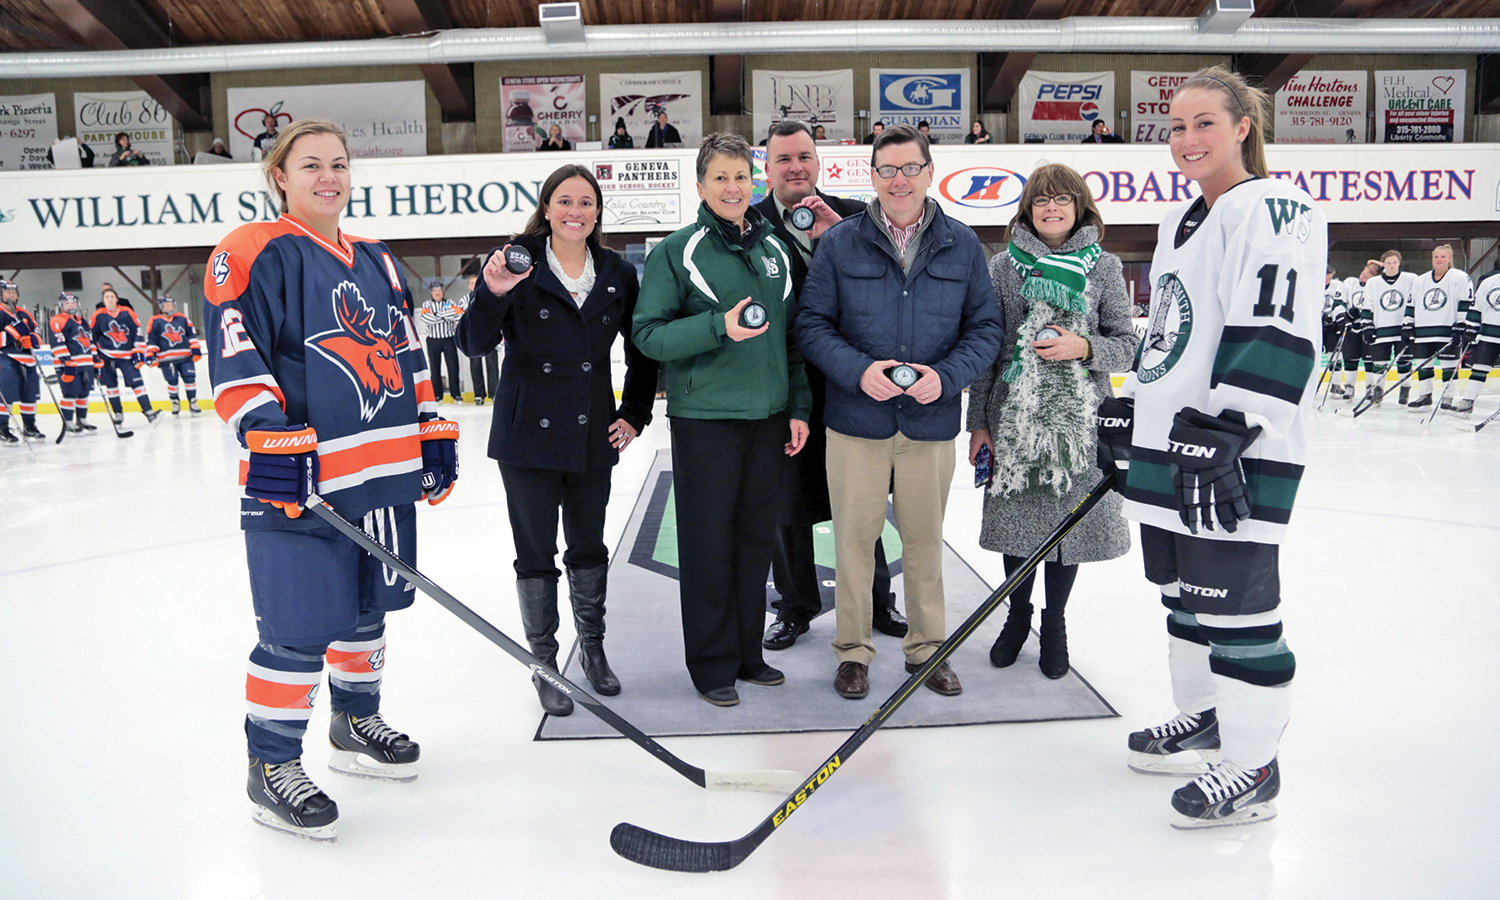 Utica forward Kelsey Dowdall, ECAC Associate Vice President for Leagues & Affiliates Katie Boldvich, William Smith Athletics Director Deb Steward, Geneva City Manager Matt Horn, President Emeritus Mark D. Gearan L.H.D. '17, Former Board Chair Maureen Collins Zupan '72, P'09 and Krista Federow '18 gather for the puck drop before the inaugural Heron home game.